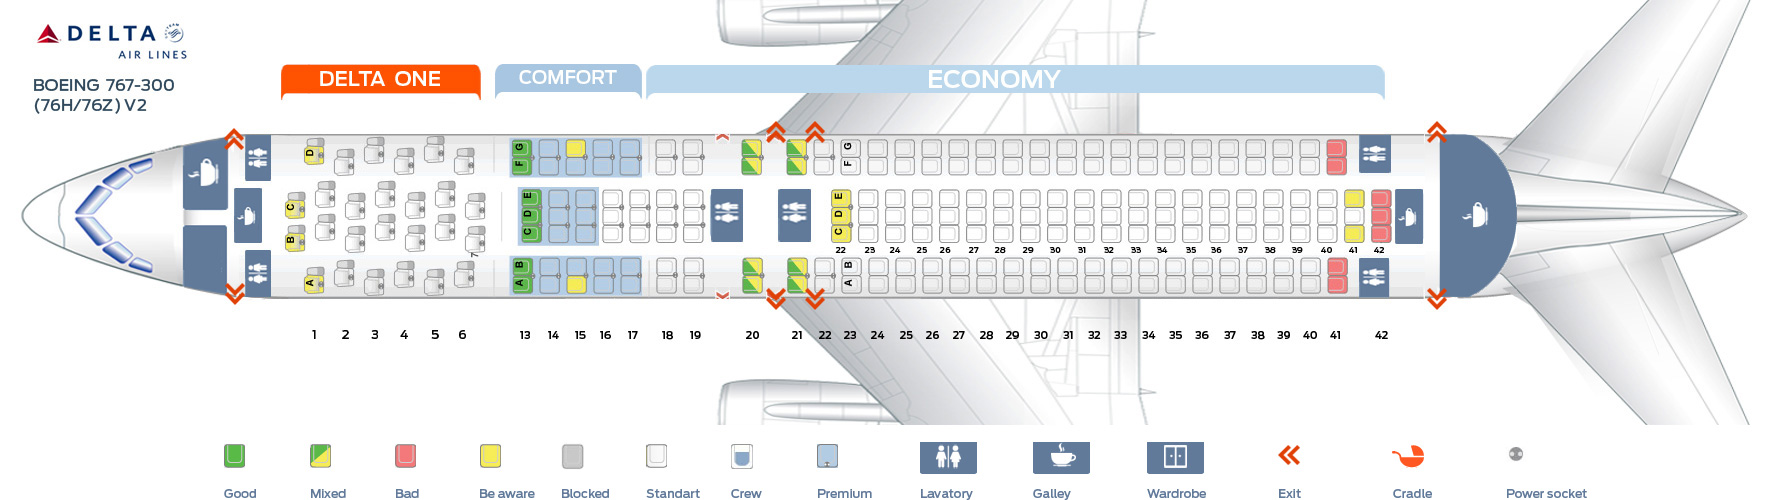 Seat map boeing 767 300 delta airlines best seats in plane for Delta main cabin vs delta comfort